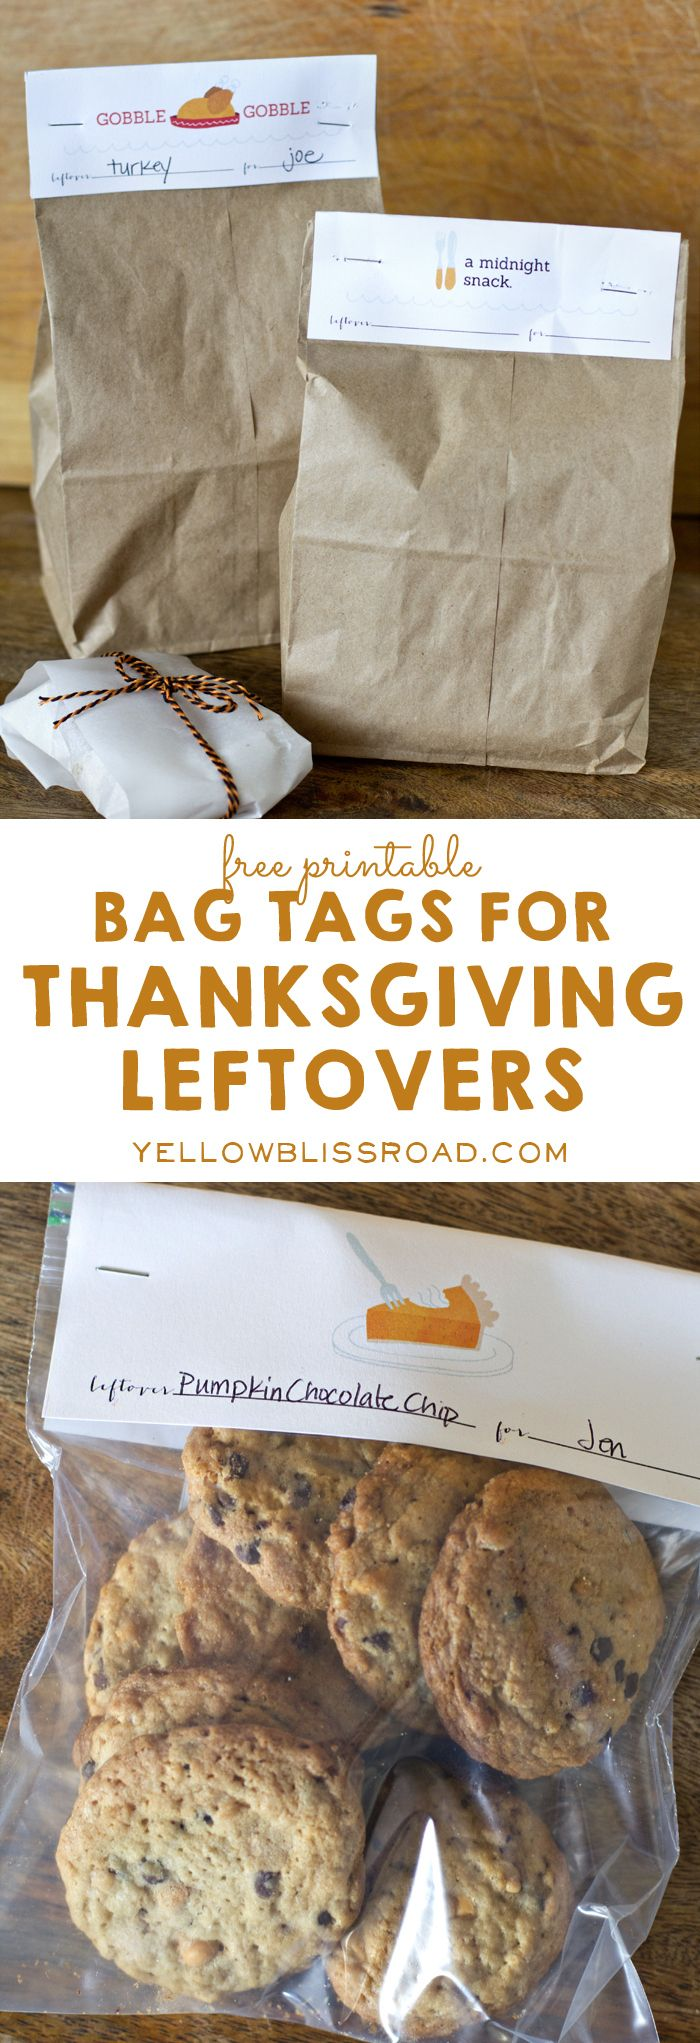 Bag Tags for Thanksgiving Leftovers!! By Yellow Bliss Road for Tatertots and Jello #DIY #Thanksgiving